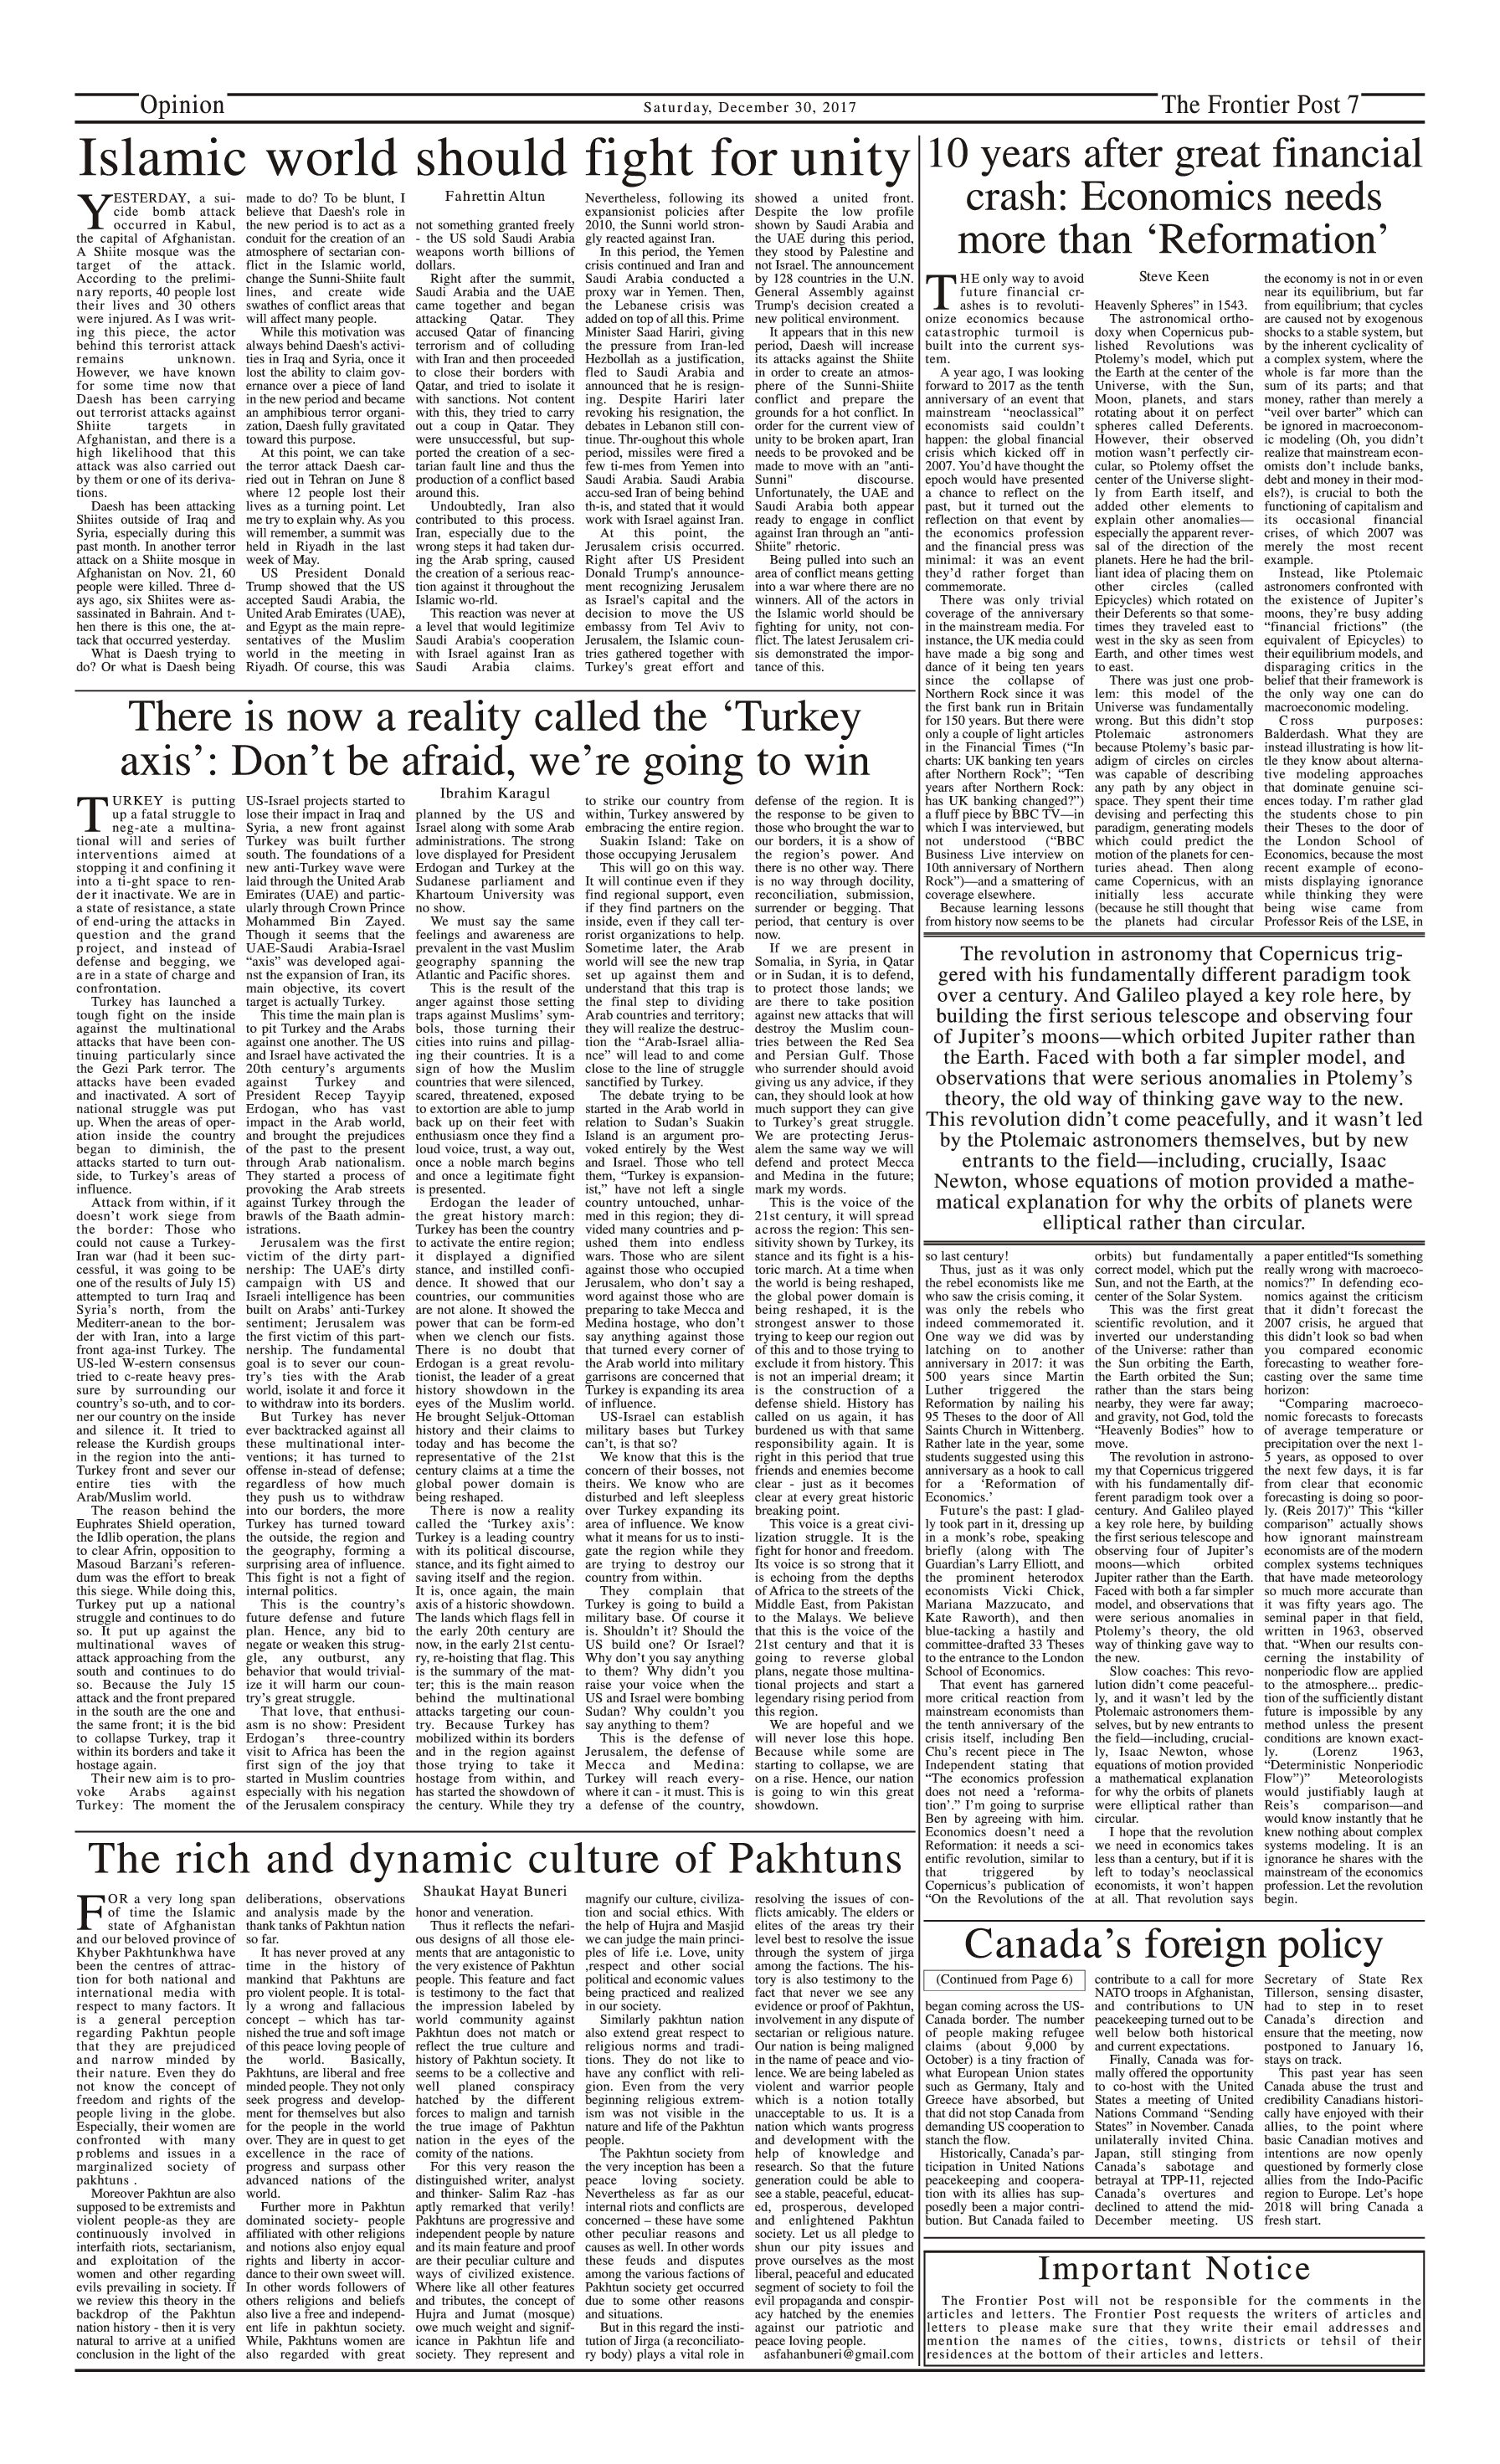 Opinion Page 30-12